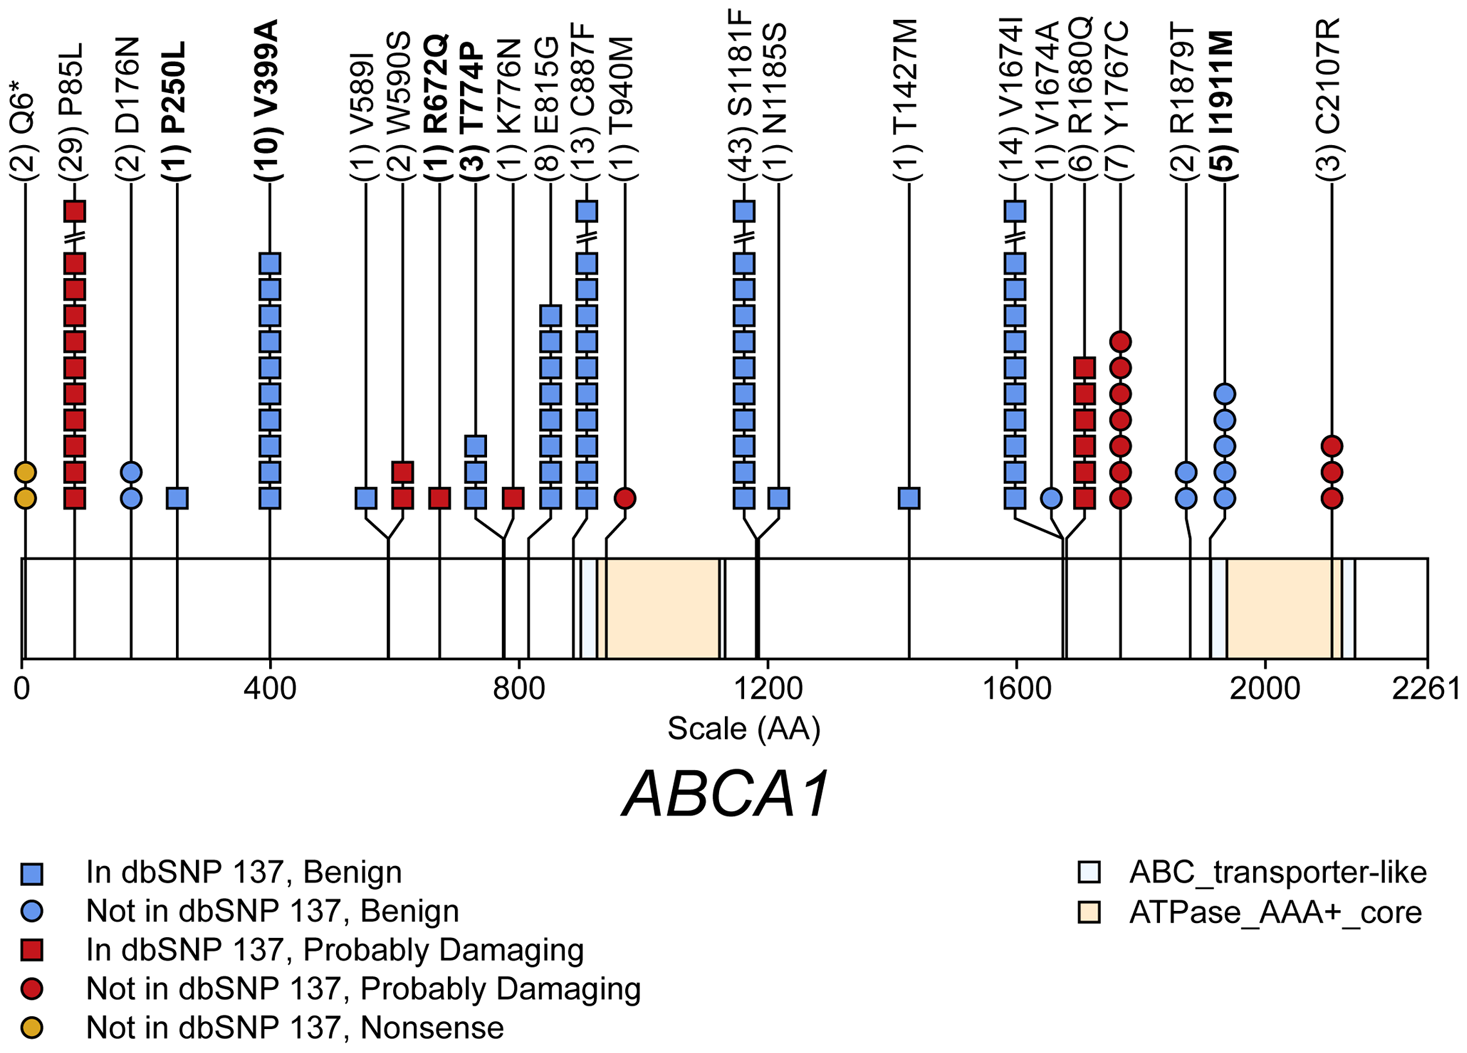 Schematic of rare (MAF&lt;1%) non-synonymous variants used in the gene-level test of total cholesterol (TC) in gene <i>ABCA1</i>.